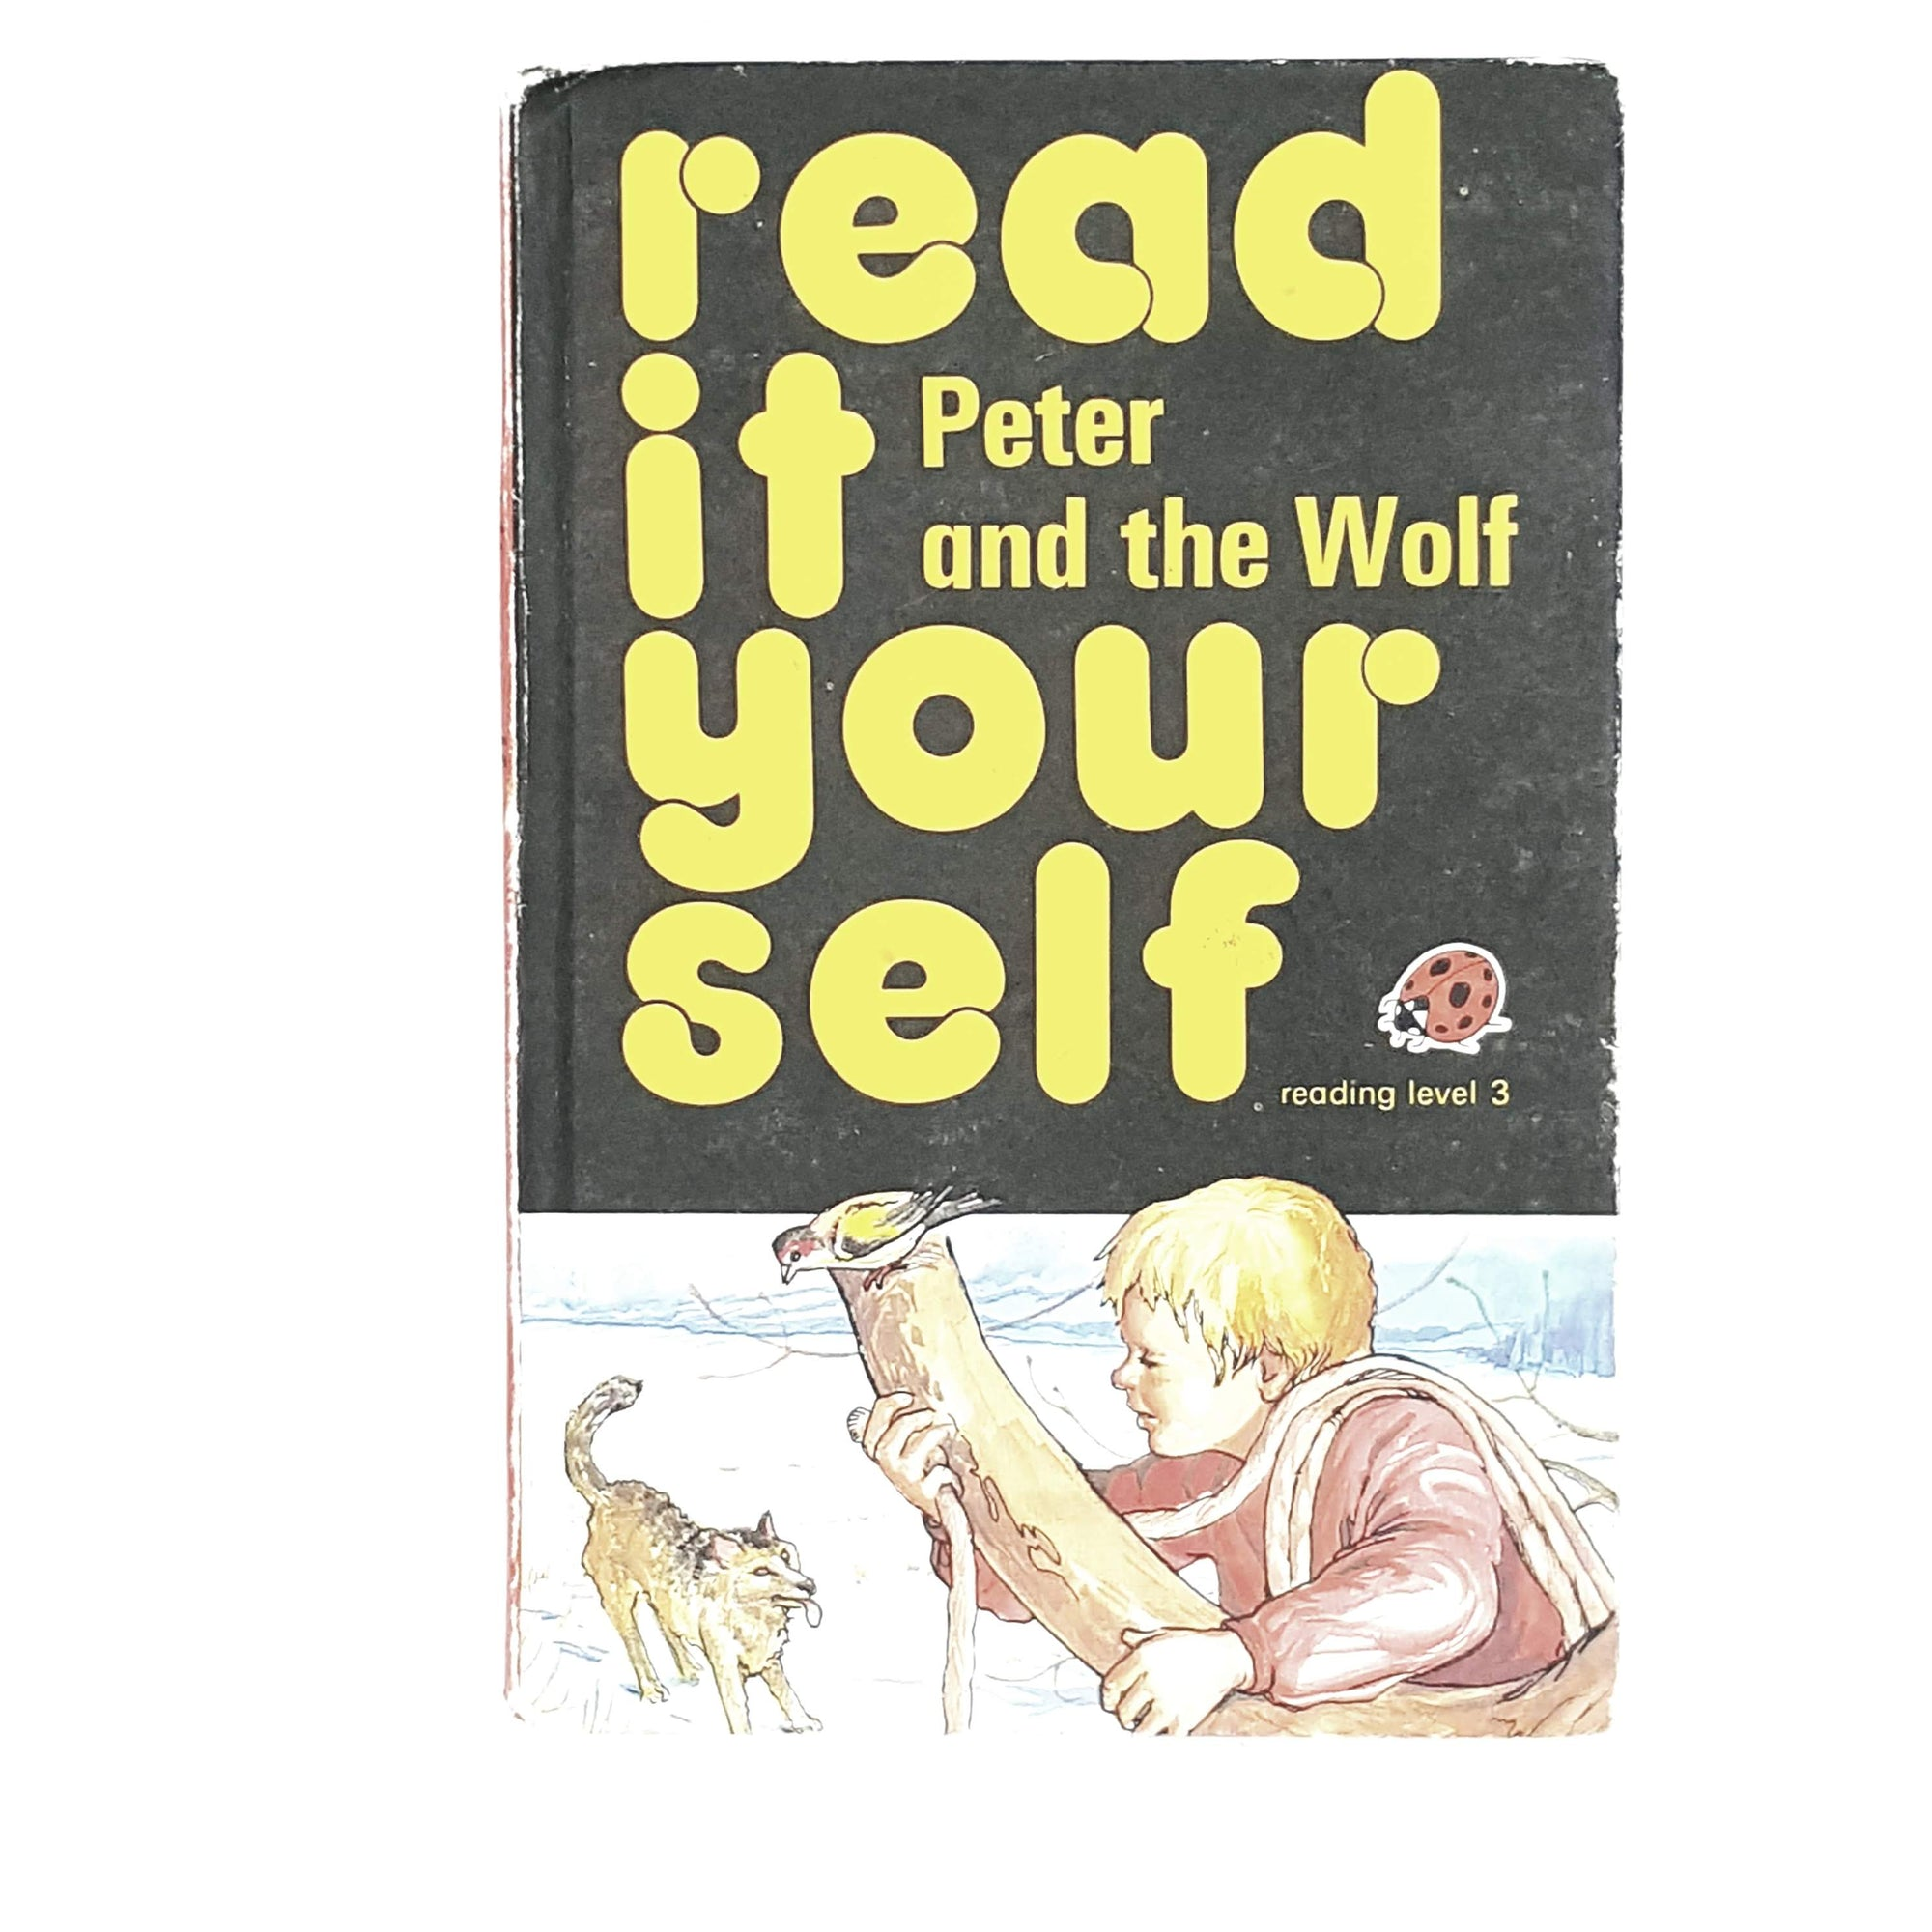 Peter and the Wolf by Fran Hunia 1978